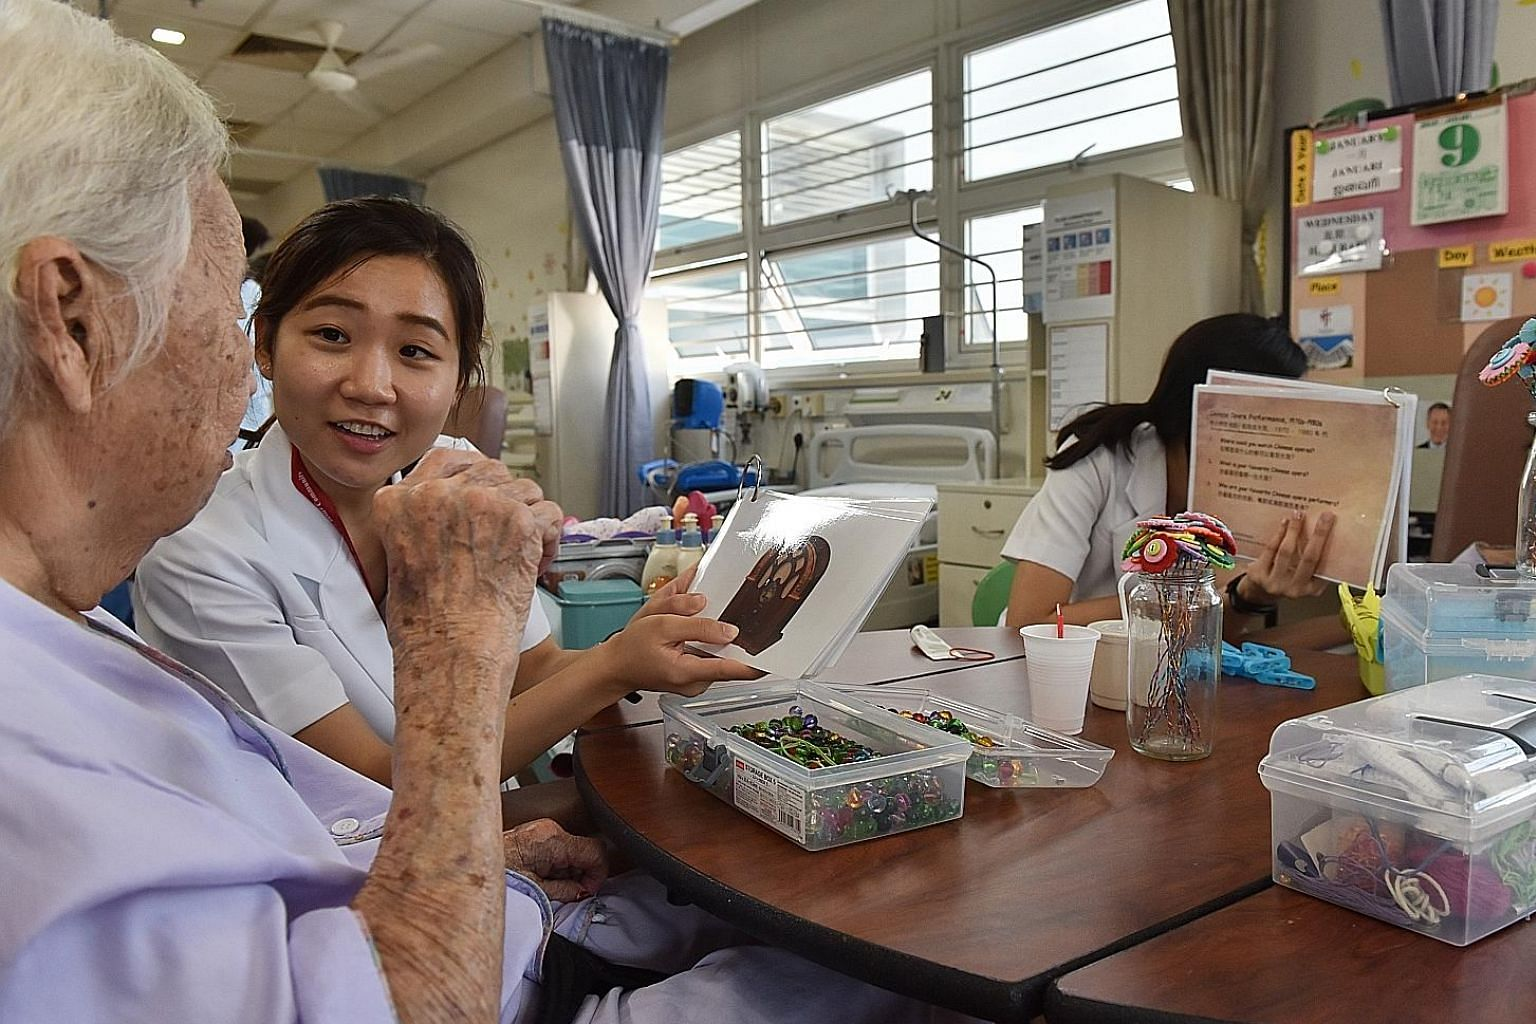 Research assistant Eileen Fabia Goh engaging a patient with flash cards in Tan Tock Seng Hospital's Subacute Geriatric Monitoring Unit. The ward caters to female patients admitted for other medical conditions but also suffer from dementia-related del